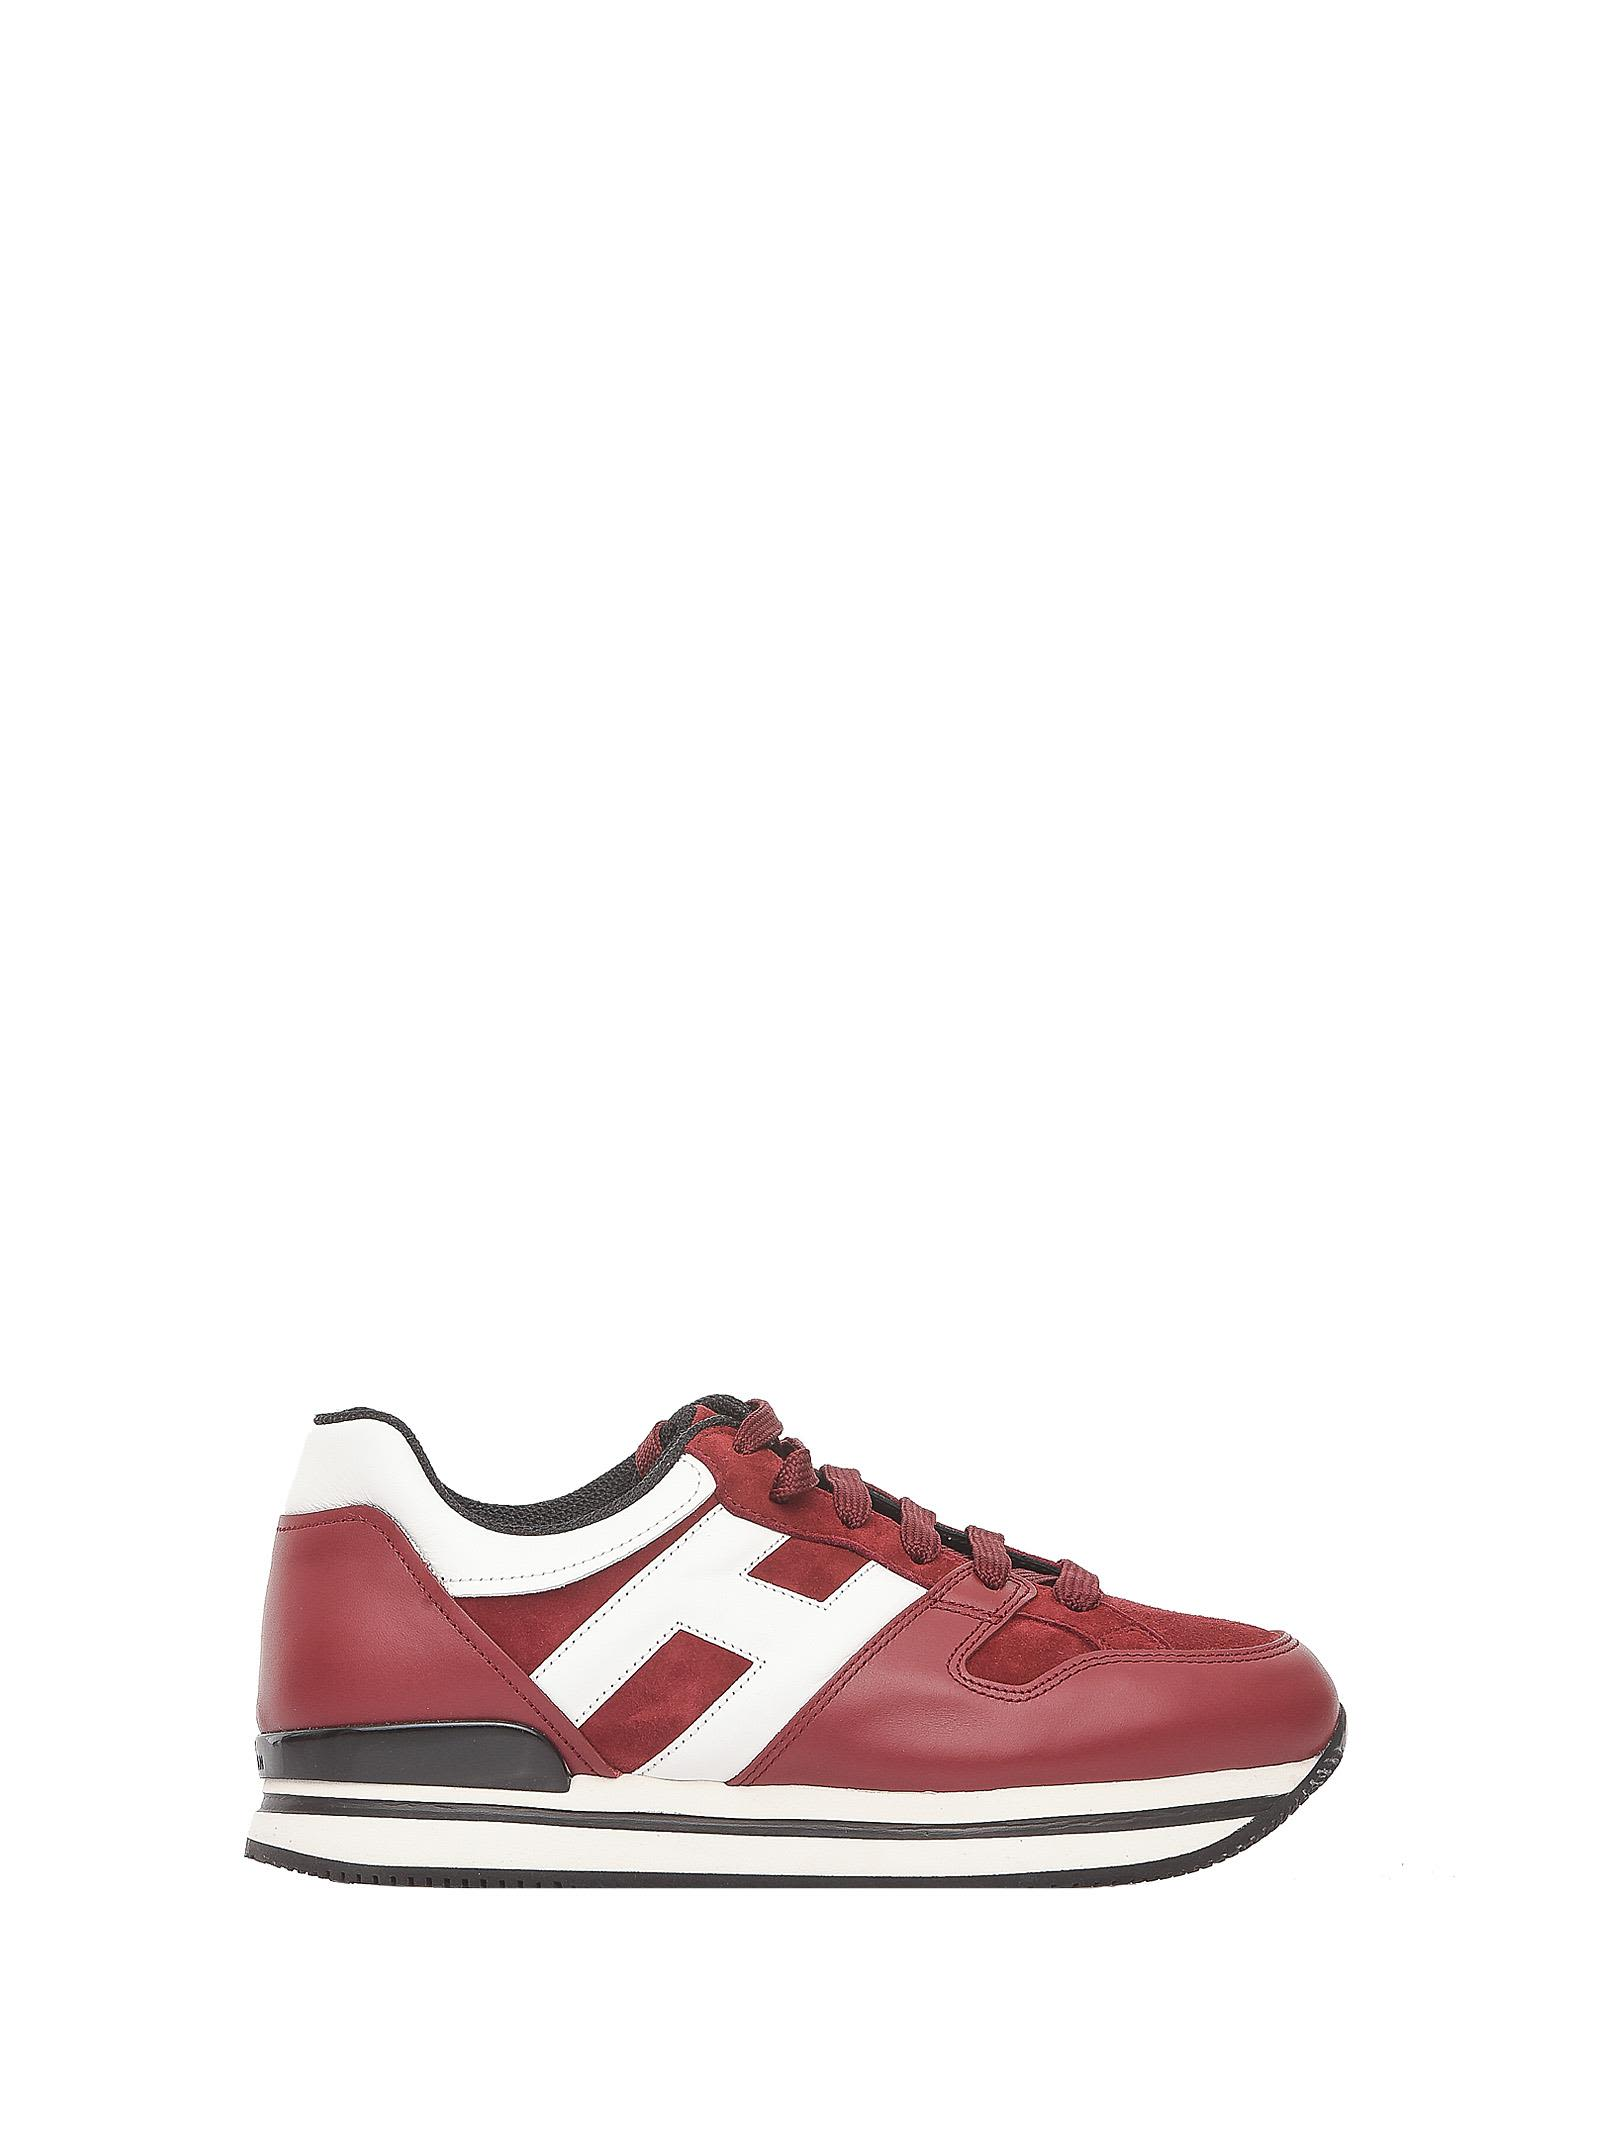 Hogan Sneakers H222 Red-white